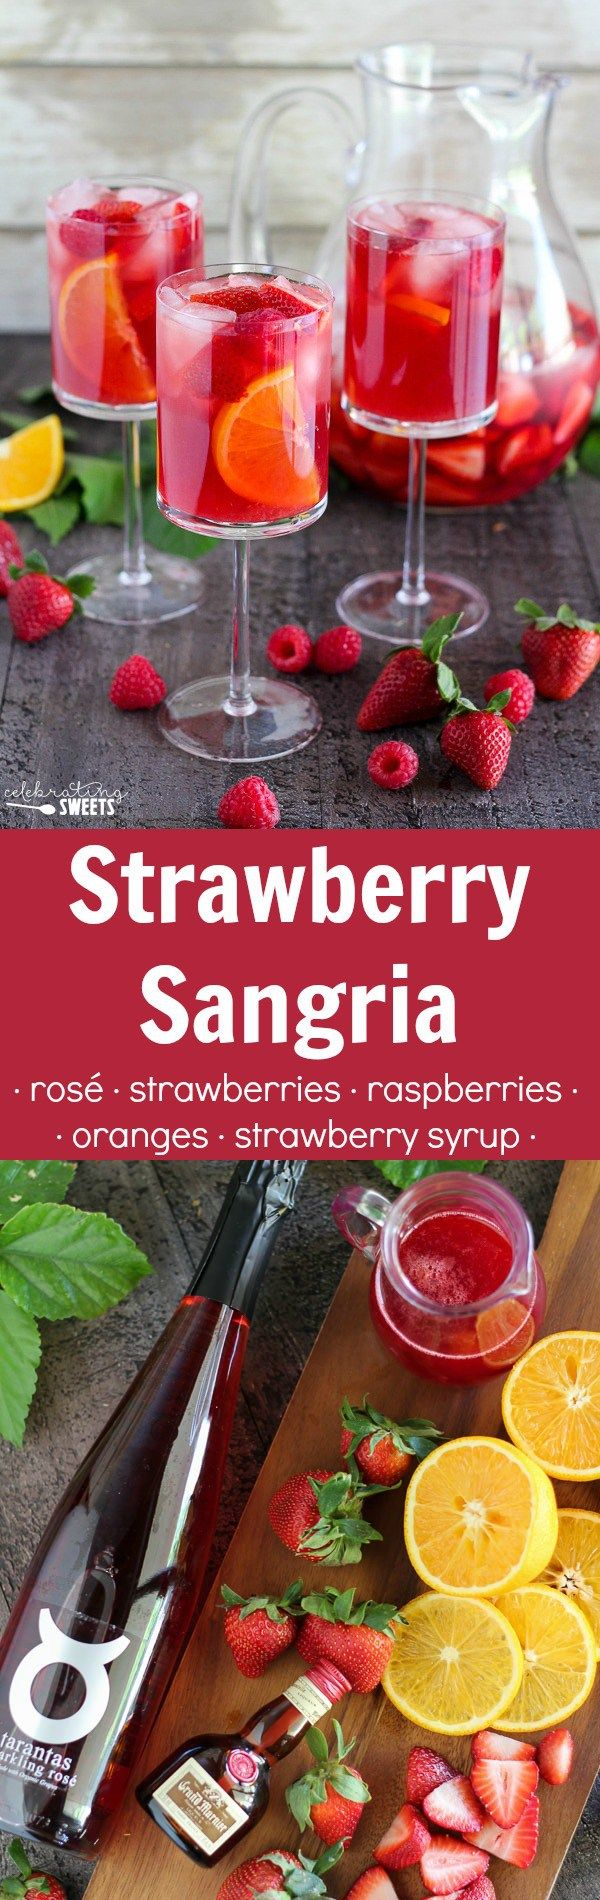 Strawberry Sangria - White wine or rosé, flavored with fresh strawberries, raspberries, oranges, and homemade strawberry syrup. The perfect chilled cocktail for spring and summer.